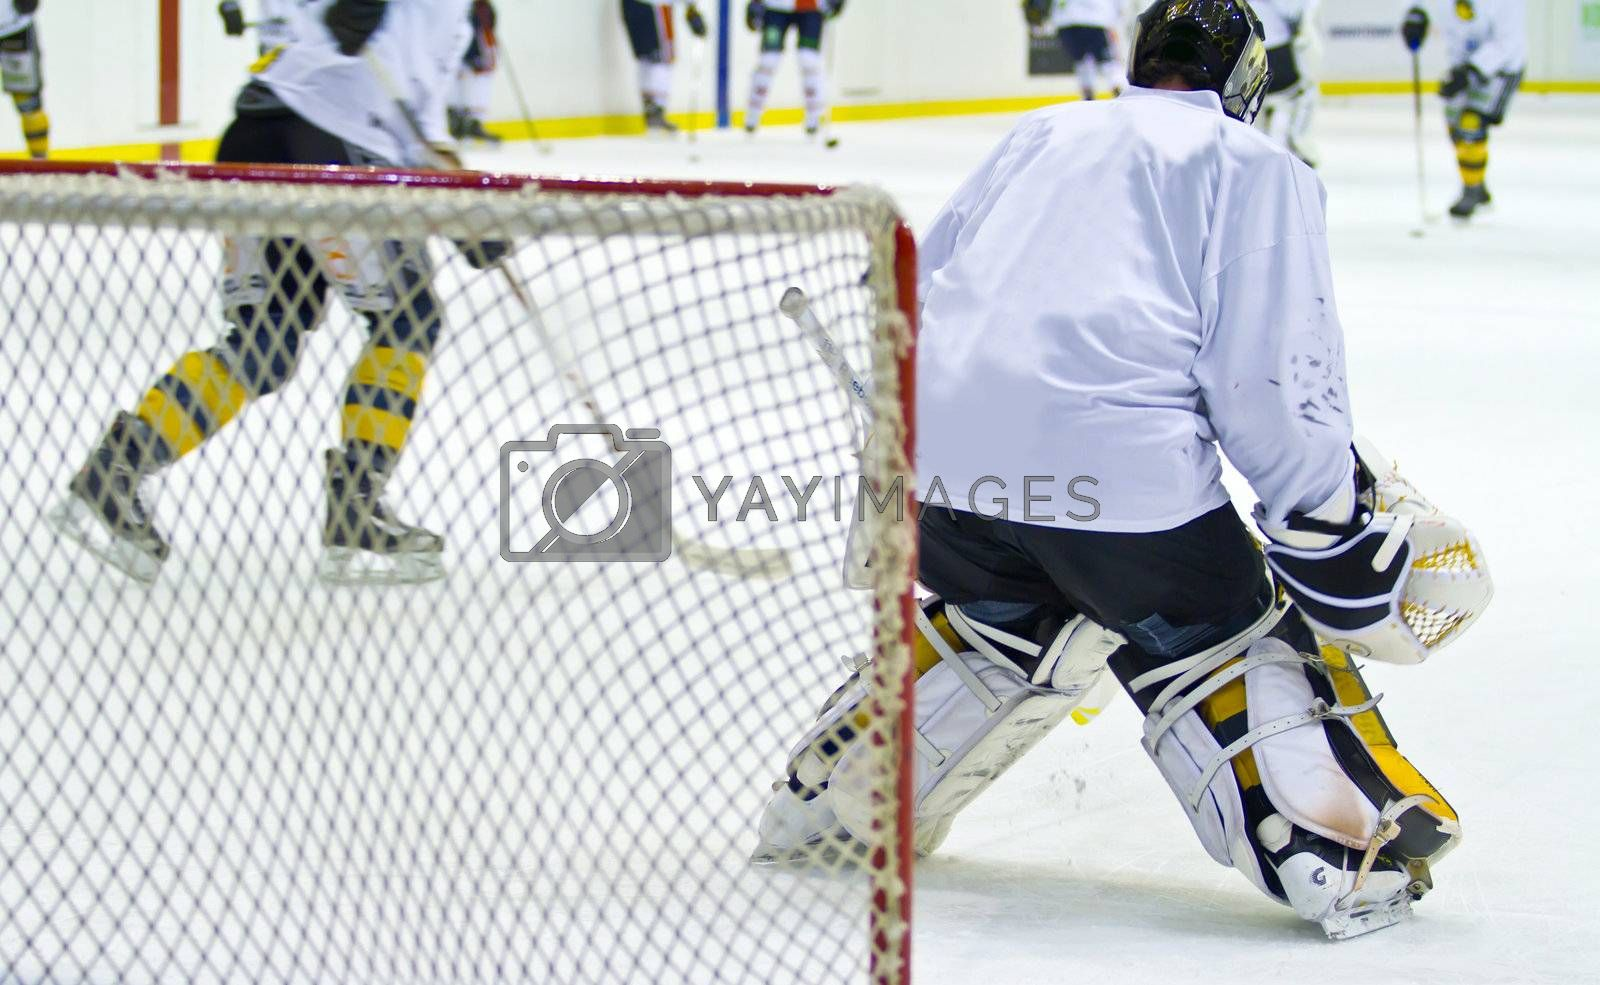 Royalty free image of hockey player during a game by lsantilli